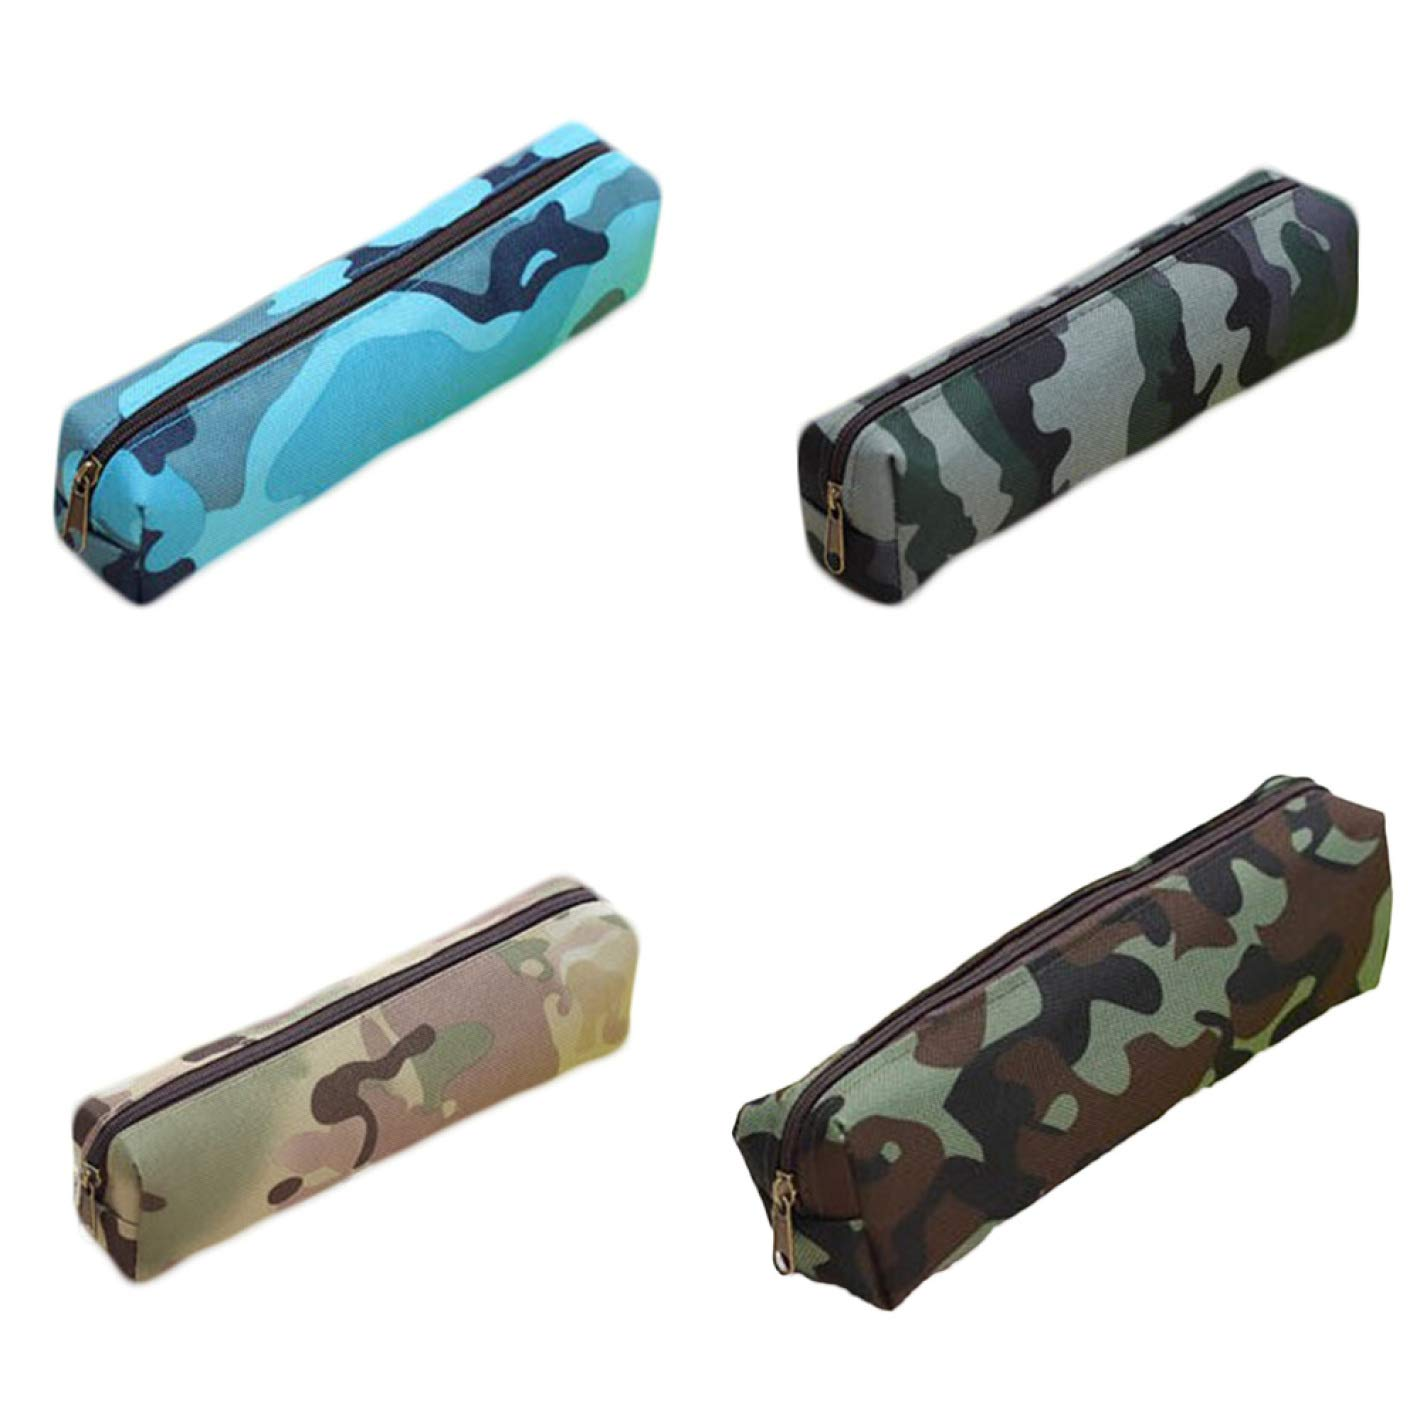 None K4-5 camouflage blue pengousm Delicato Army Green Classic Zipper Small Pencil Case Stationery Storage Pouch Bag Case